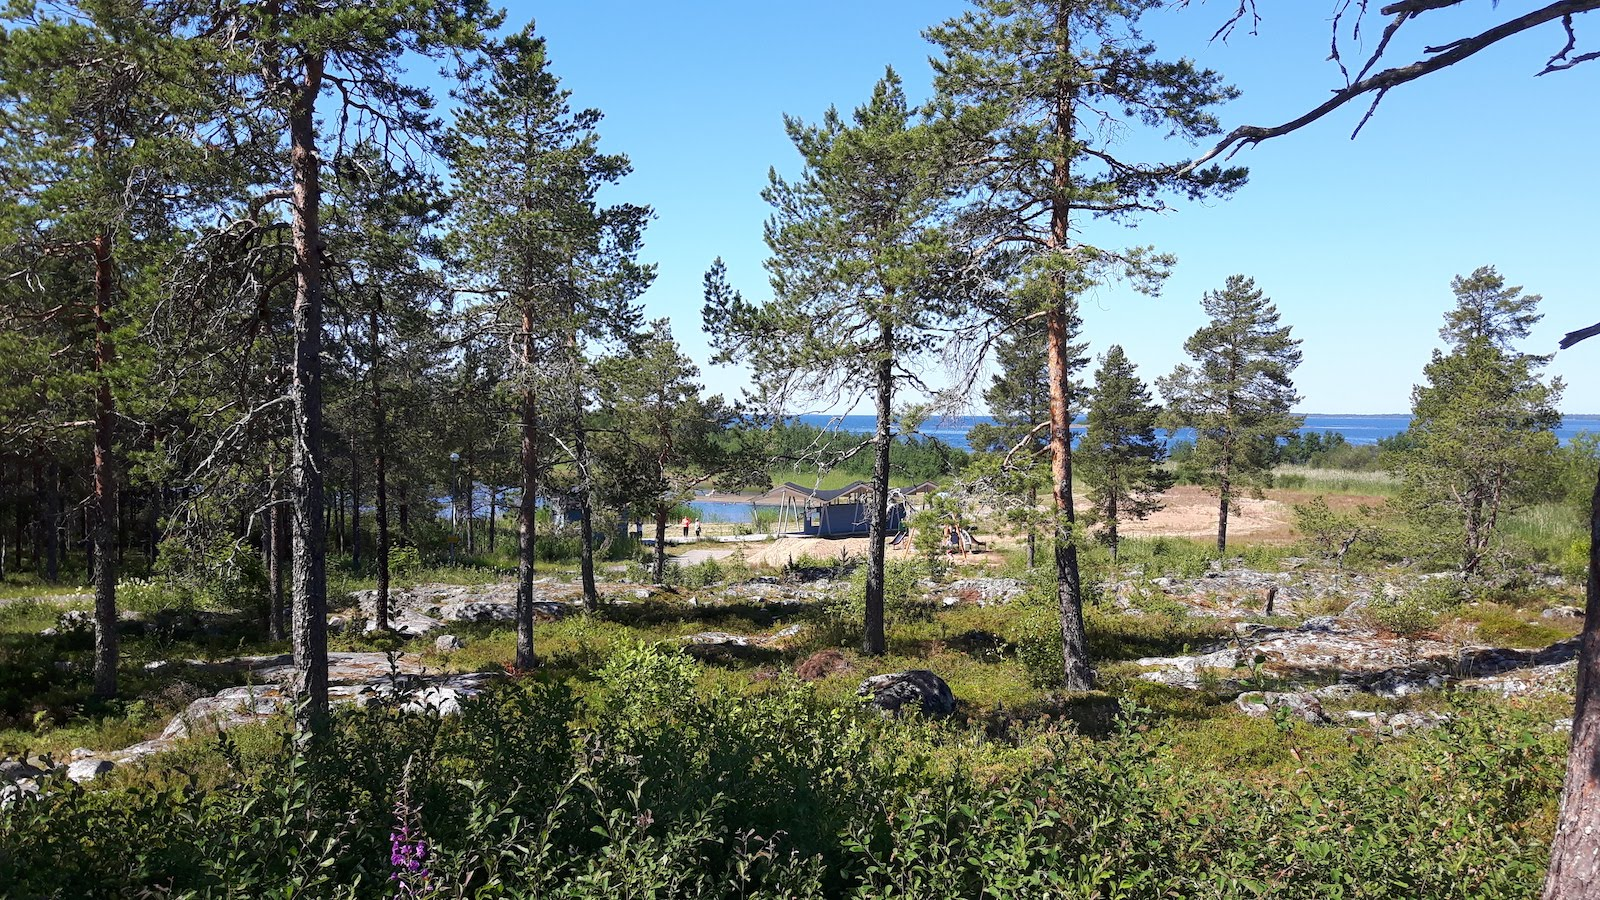 Beach and sea between Kemi and Oulu Finland